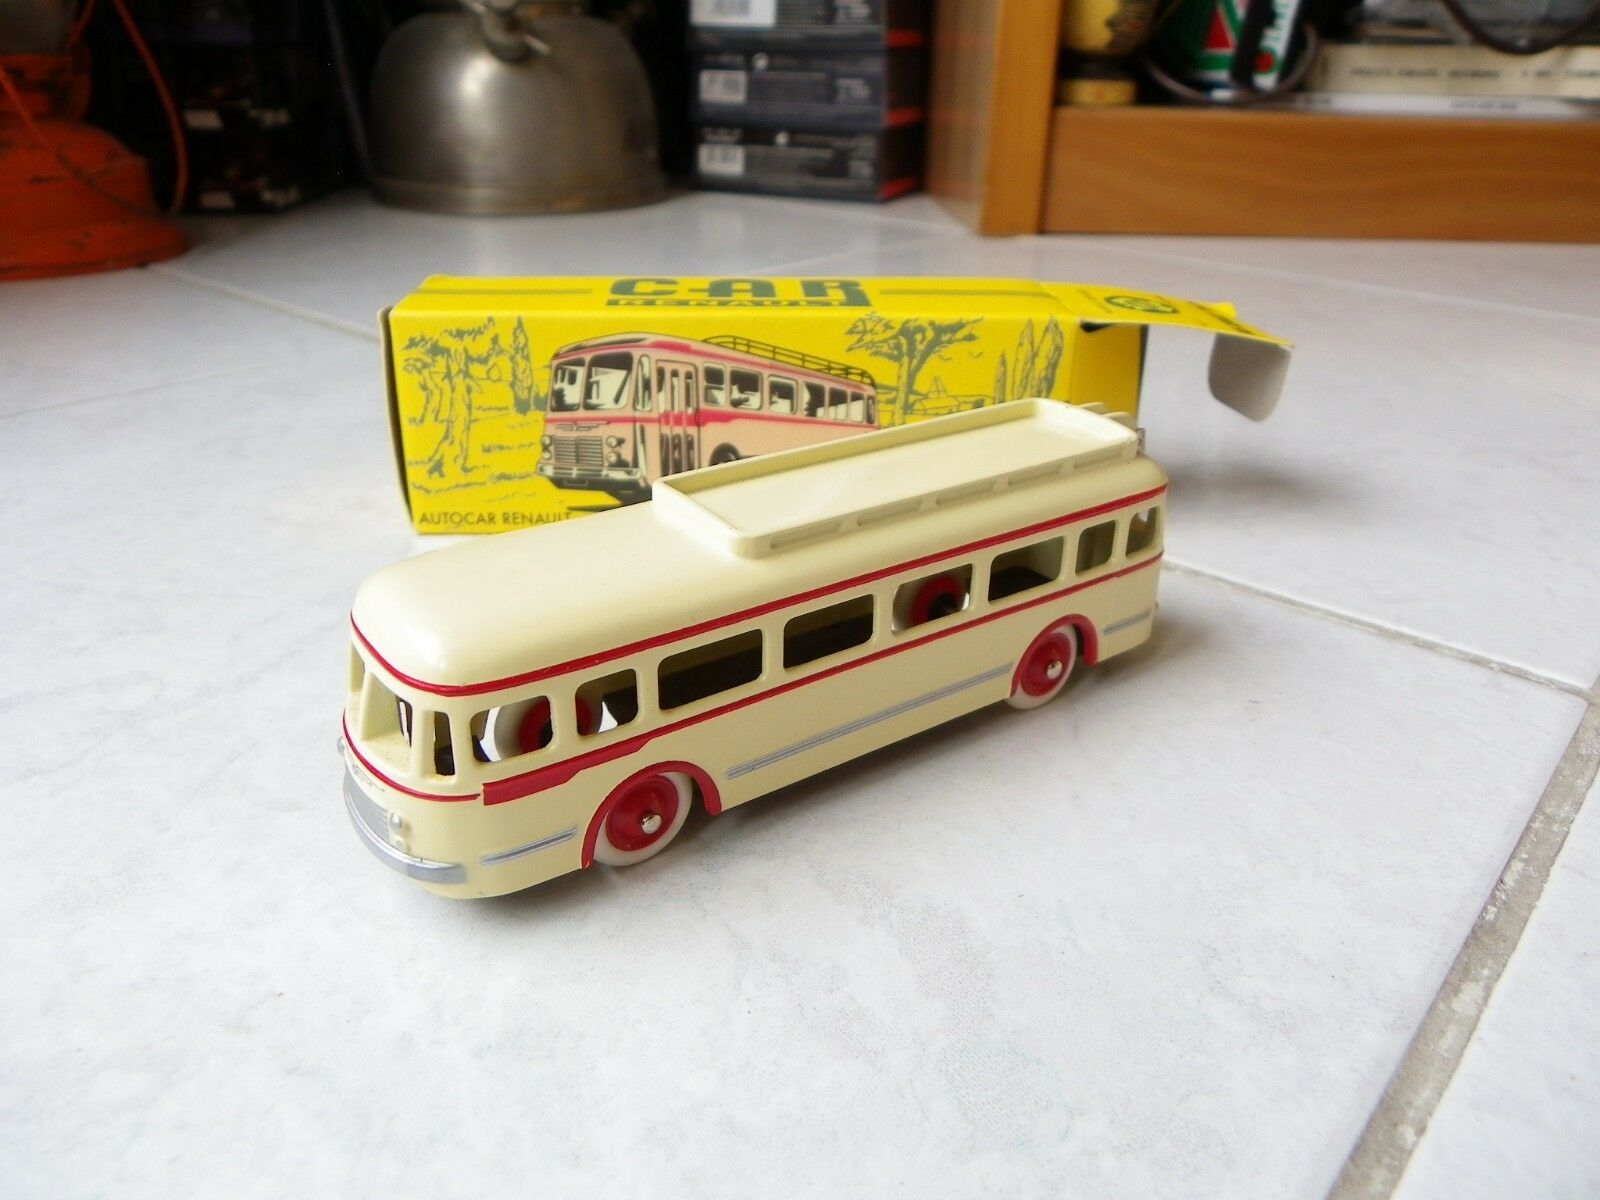 Bus Bus Renault 120 CV Norev CIJ 1 43 with box